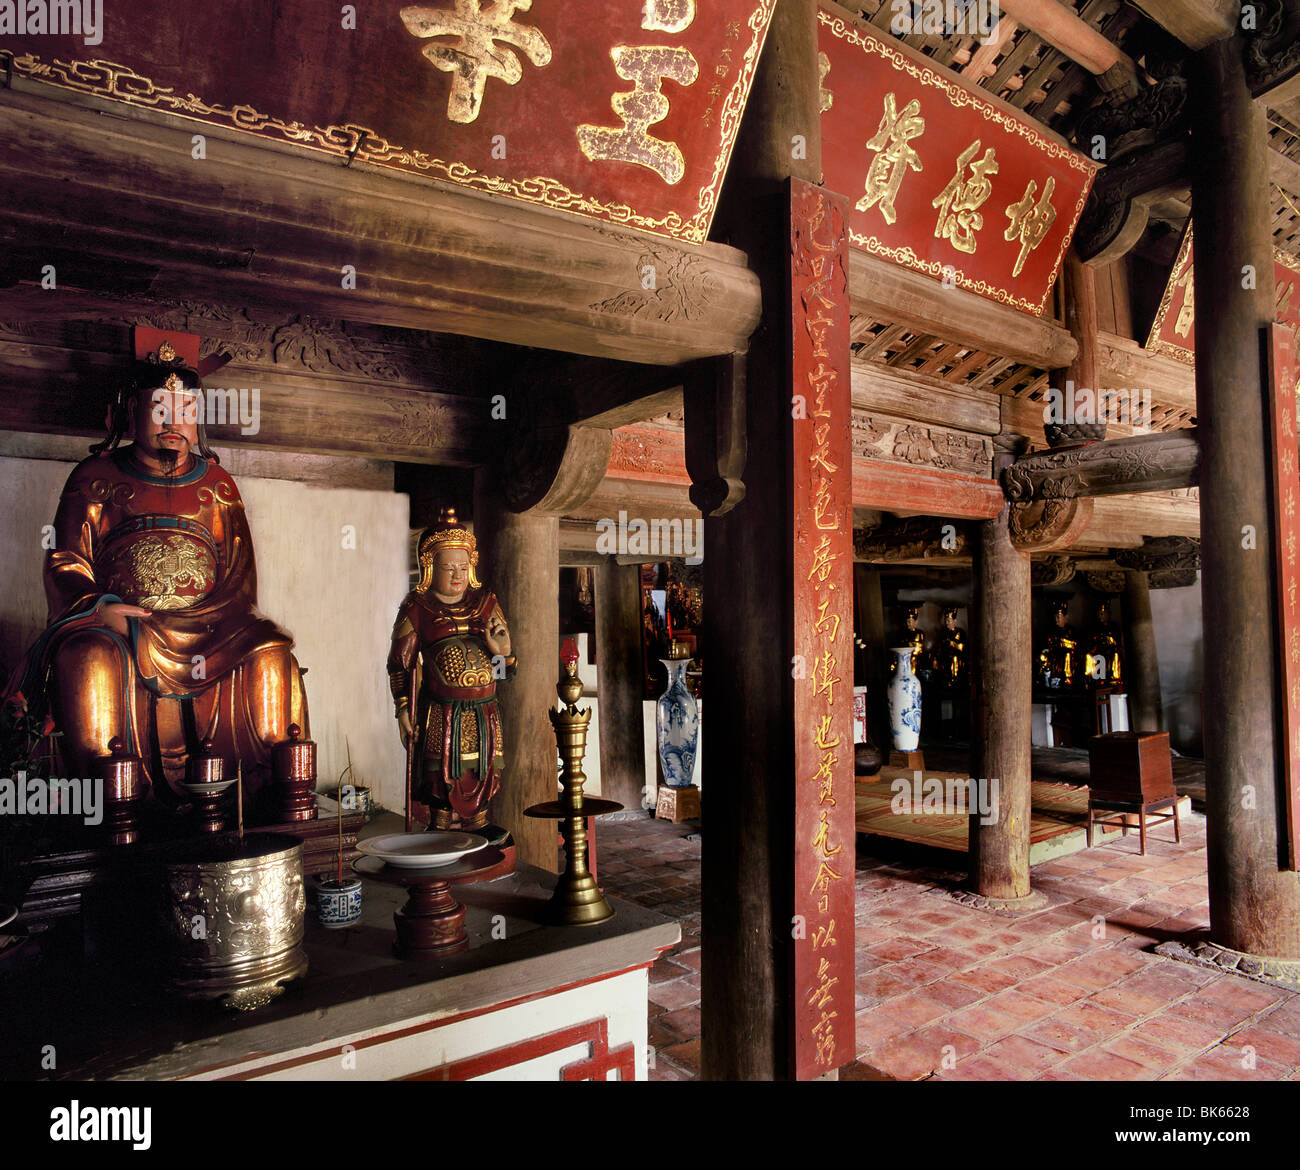 Statue of Confucius in the Great Hall of Ceremonies in a Taoist temple, Hanoi, Vietnam, Indochina, Southeast Asia, - Stock Image